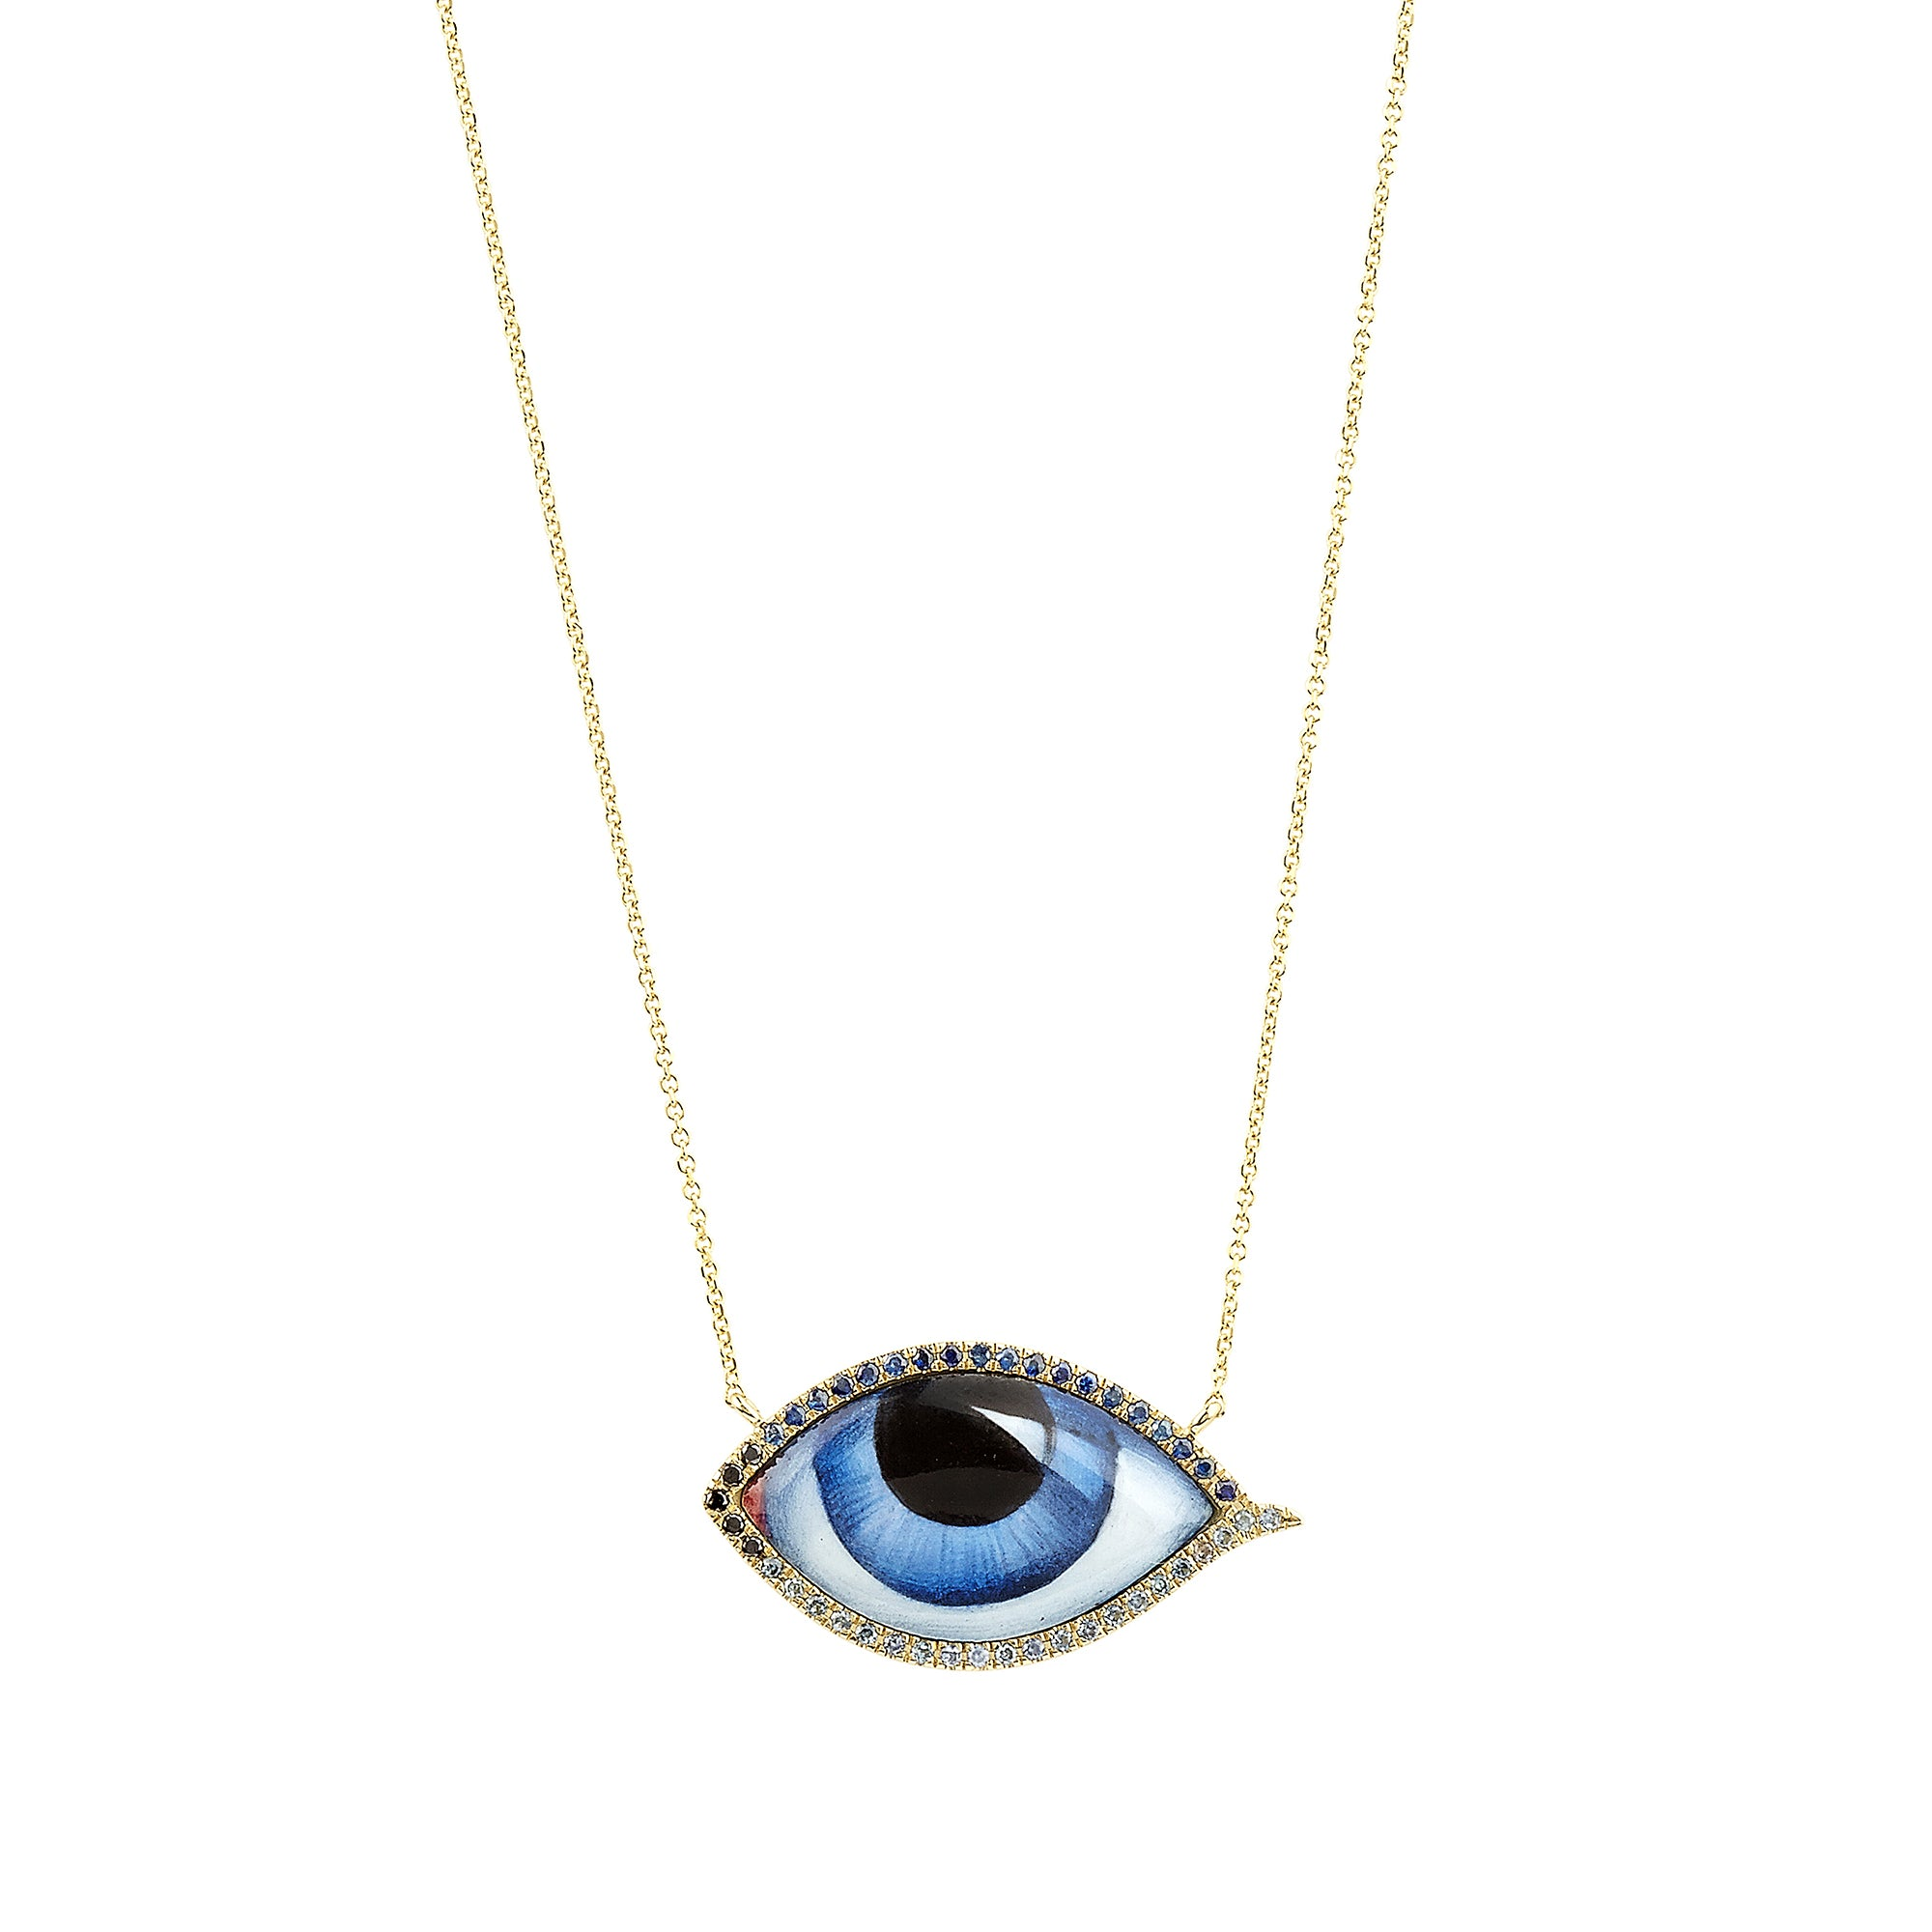 Sapphire & Diamond Blue Eye Necklace - Lito - Necklace | Broken English Jewelry